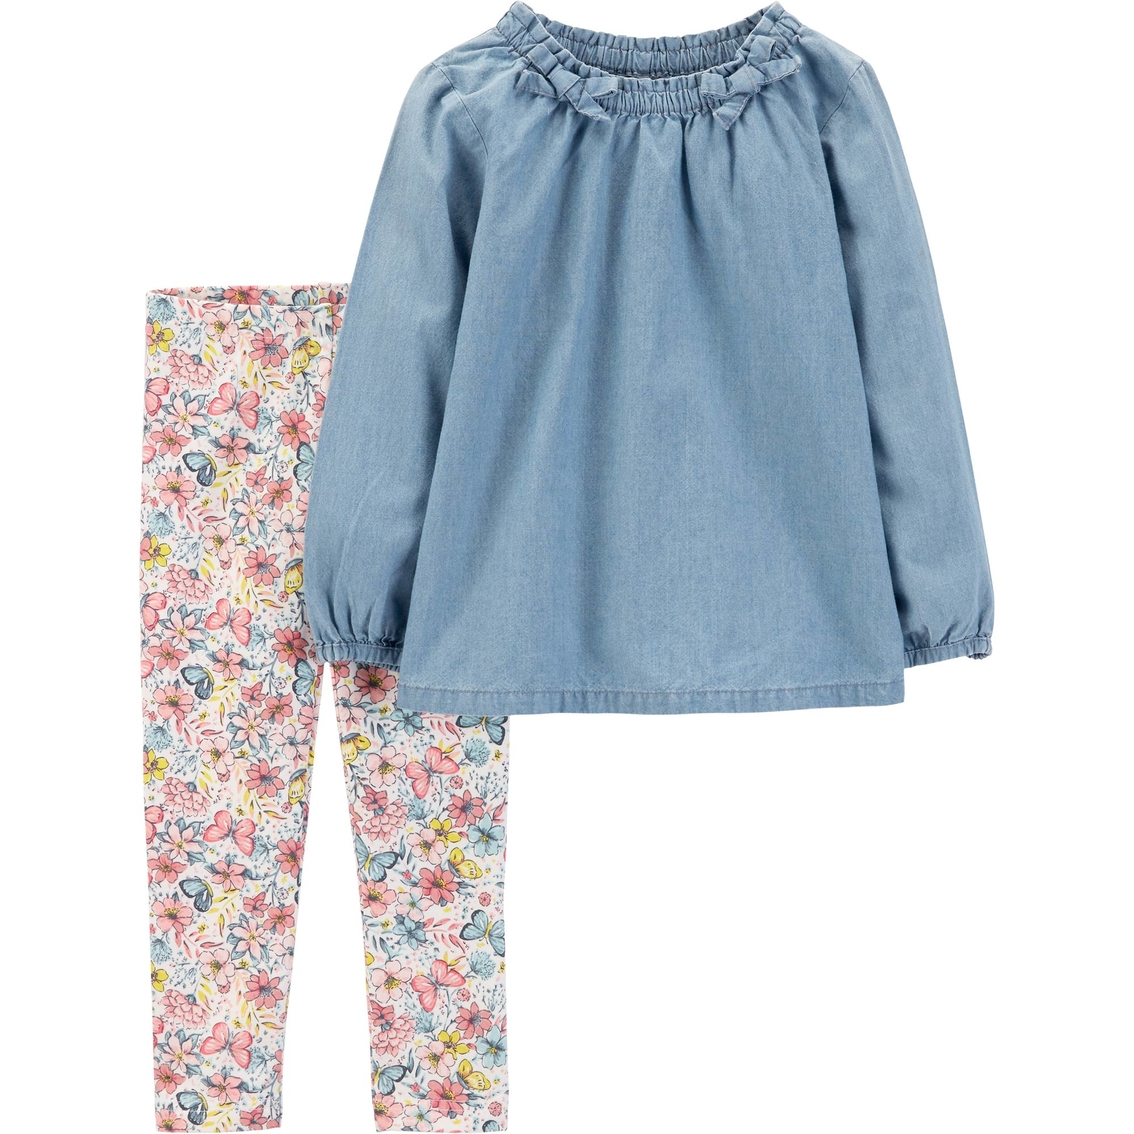 4bfe23f4b8f81 Carter's Toddler Girls 2 Pc. Chambray Top And Floral Leggings Set ...